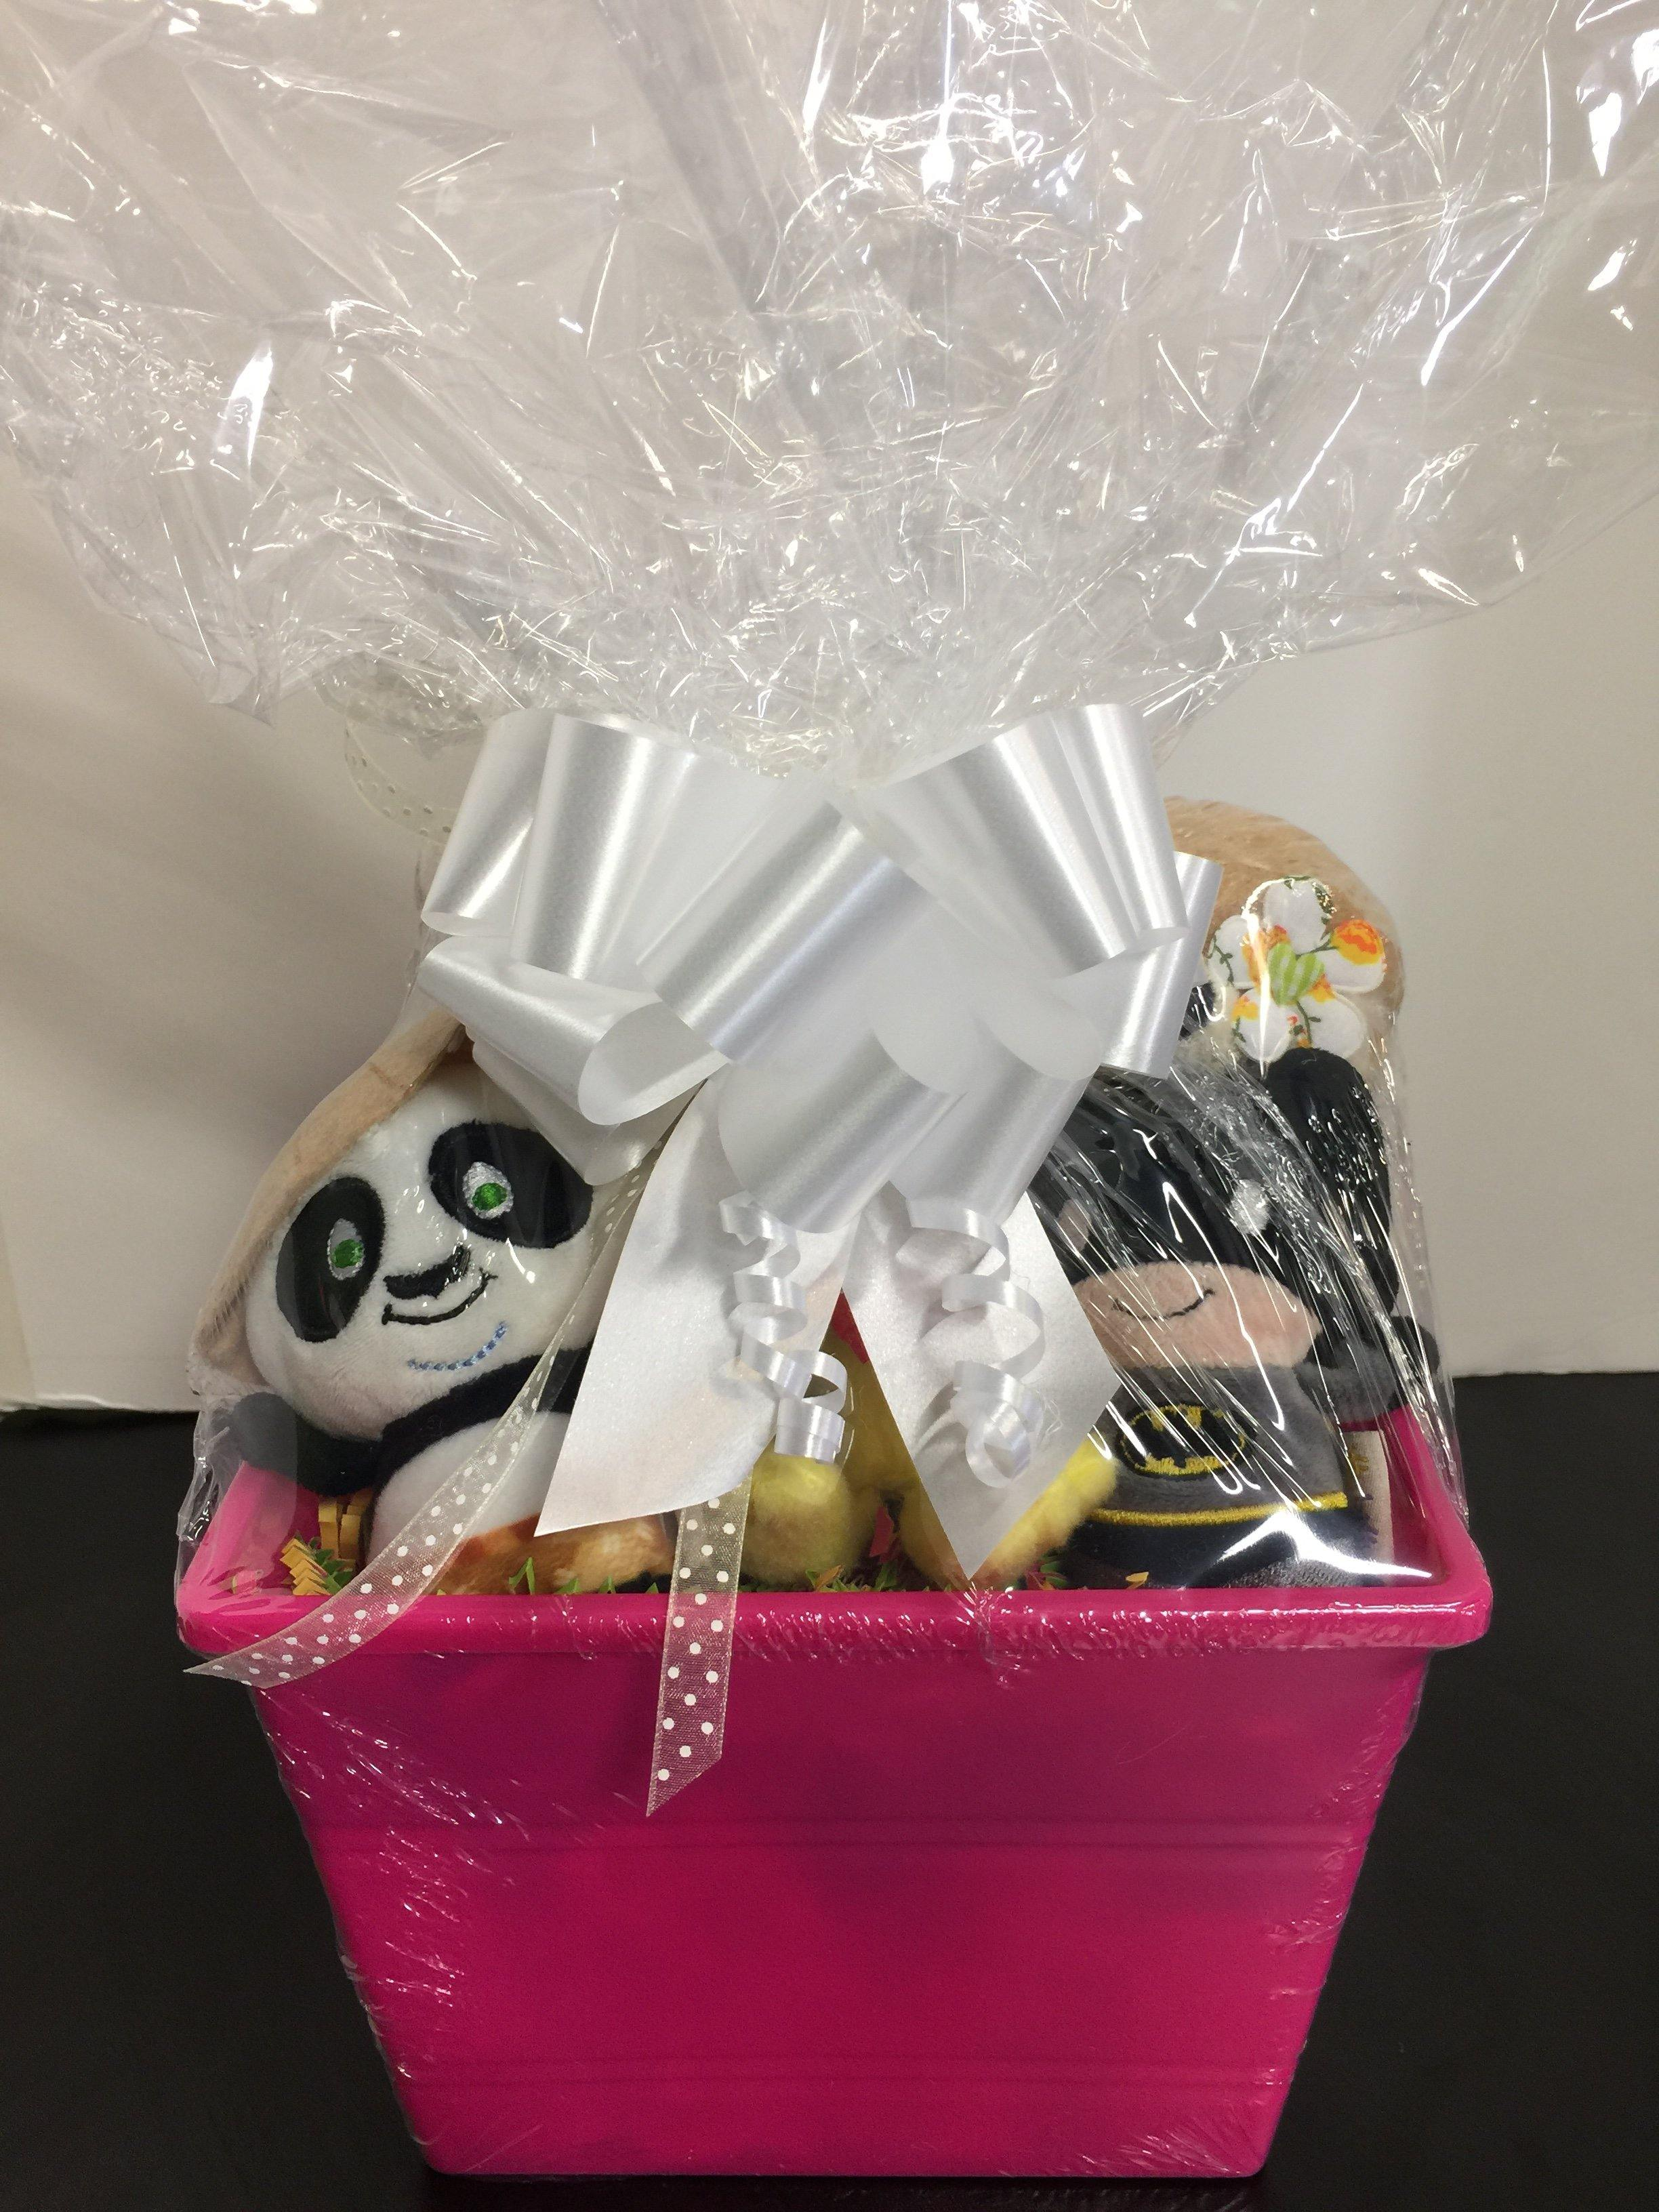 Cat Toy Gift Basket: Choice of Catnip, Noisemaker or Both! - Glad Dogs Nation | www.GladDogsNation.com